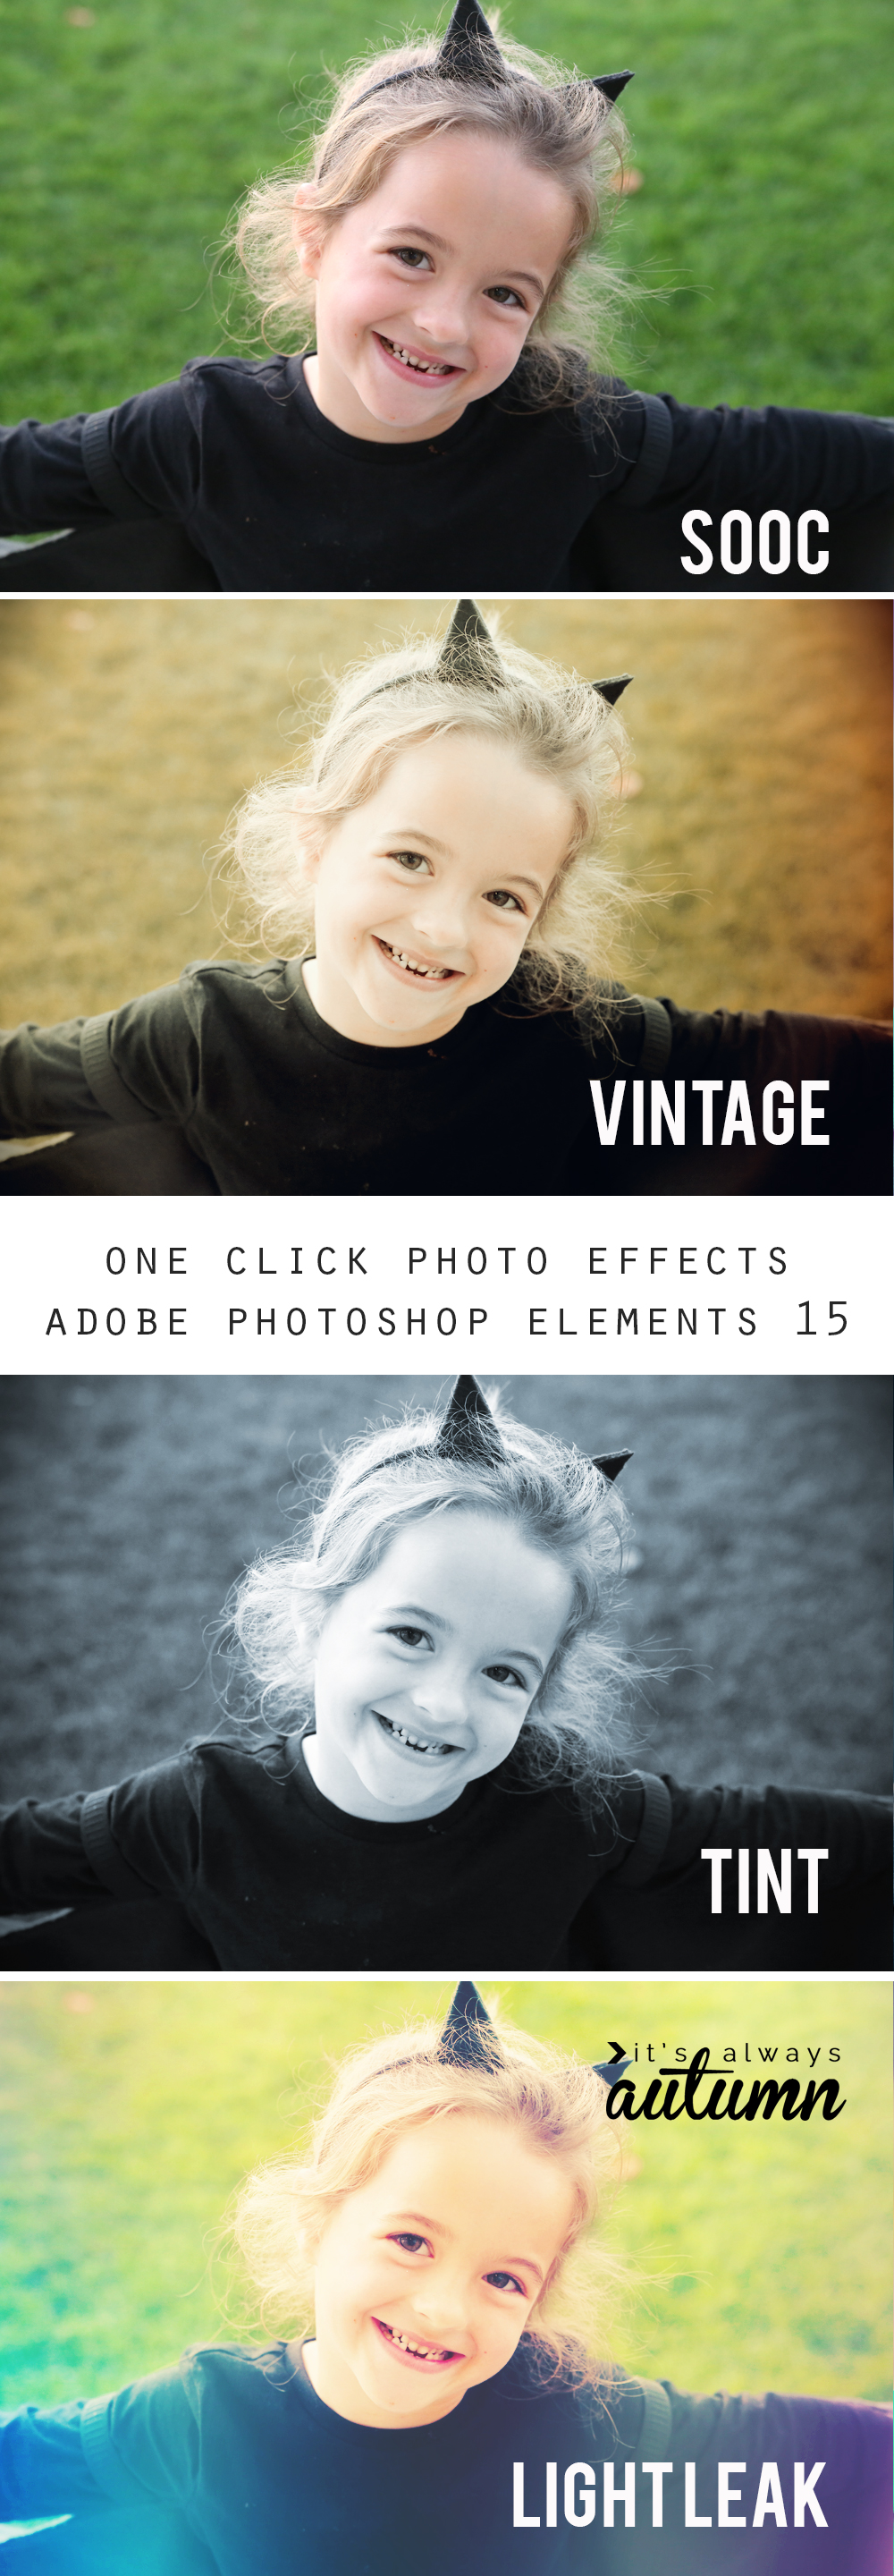 Learn how to add effects and filters to your photos with just one click using Adobe Photoshop Elements 15. Easy photo editing. Get the look of Instagram photos.